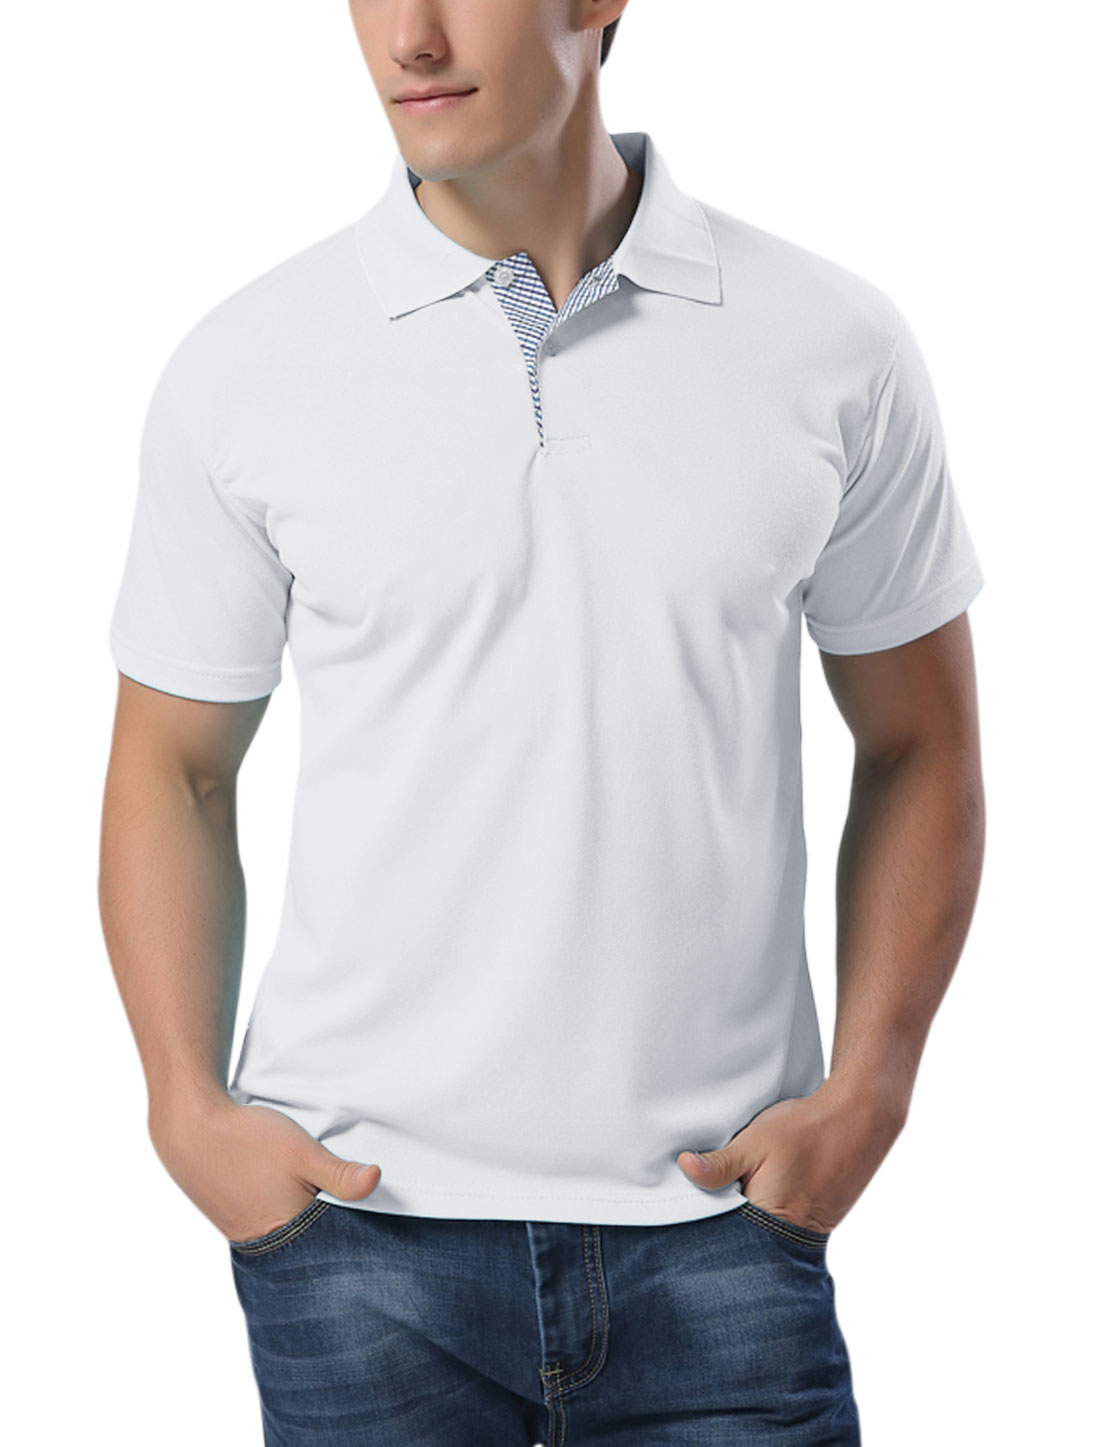 Men Short Sleeves Buttons Upper Casual Polo Shirts White L